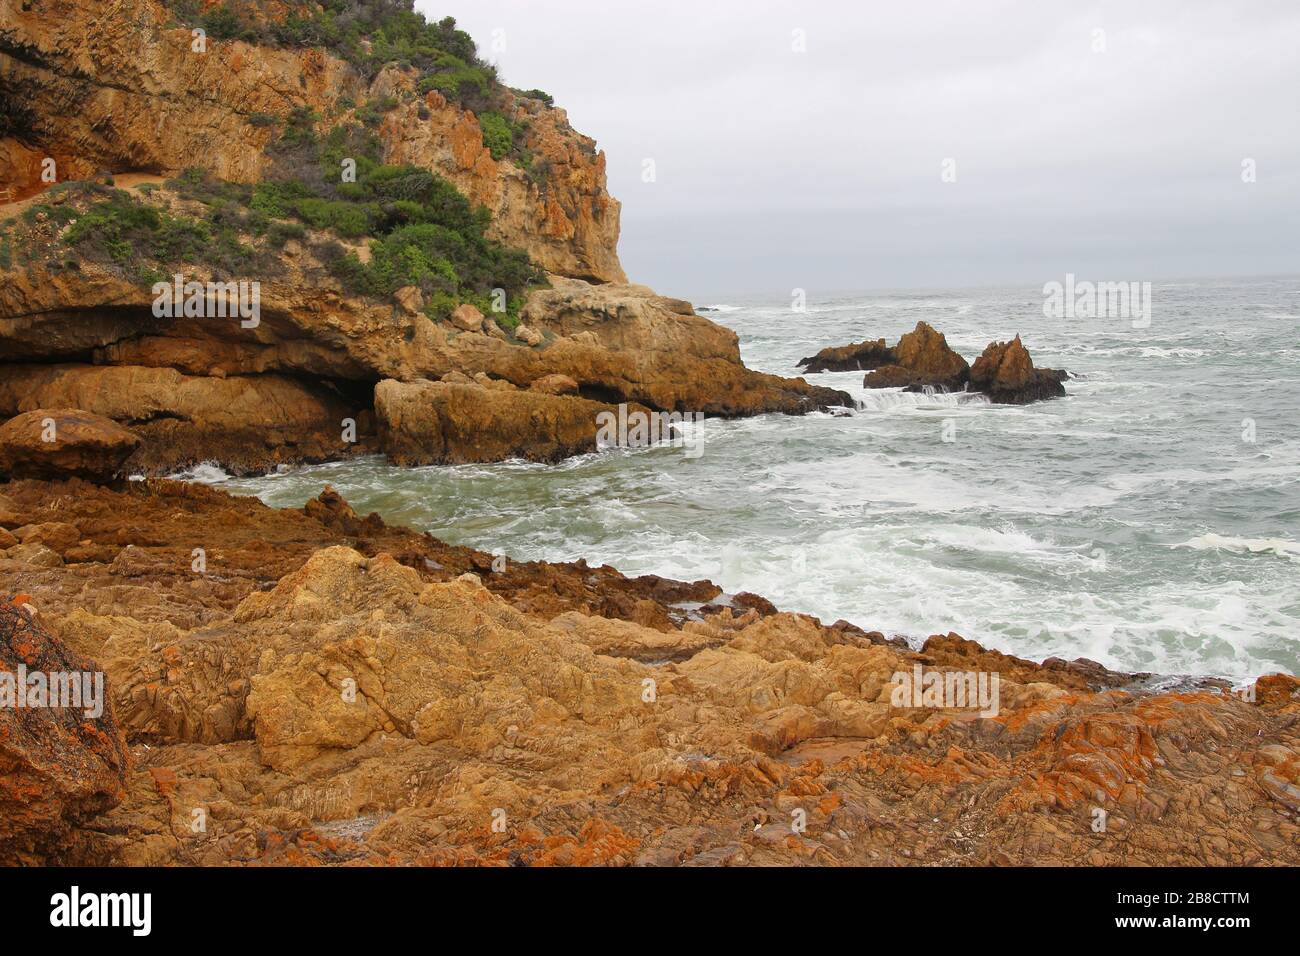 The Knysna Heads, a famous landmark along the renowned Garden Route, South Africa, Africa. Stock Photo